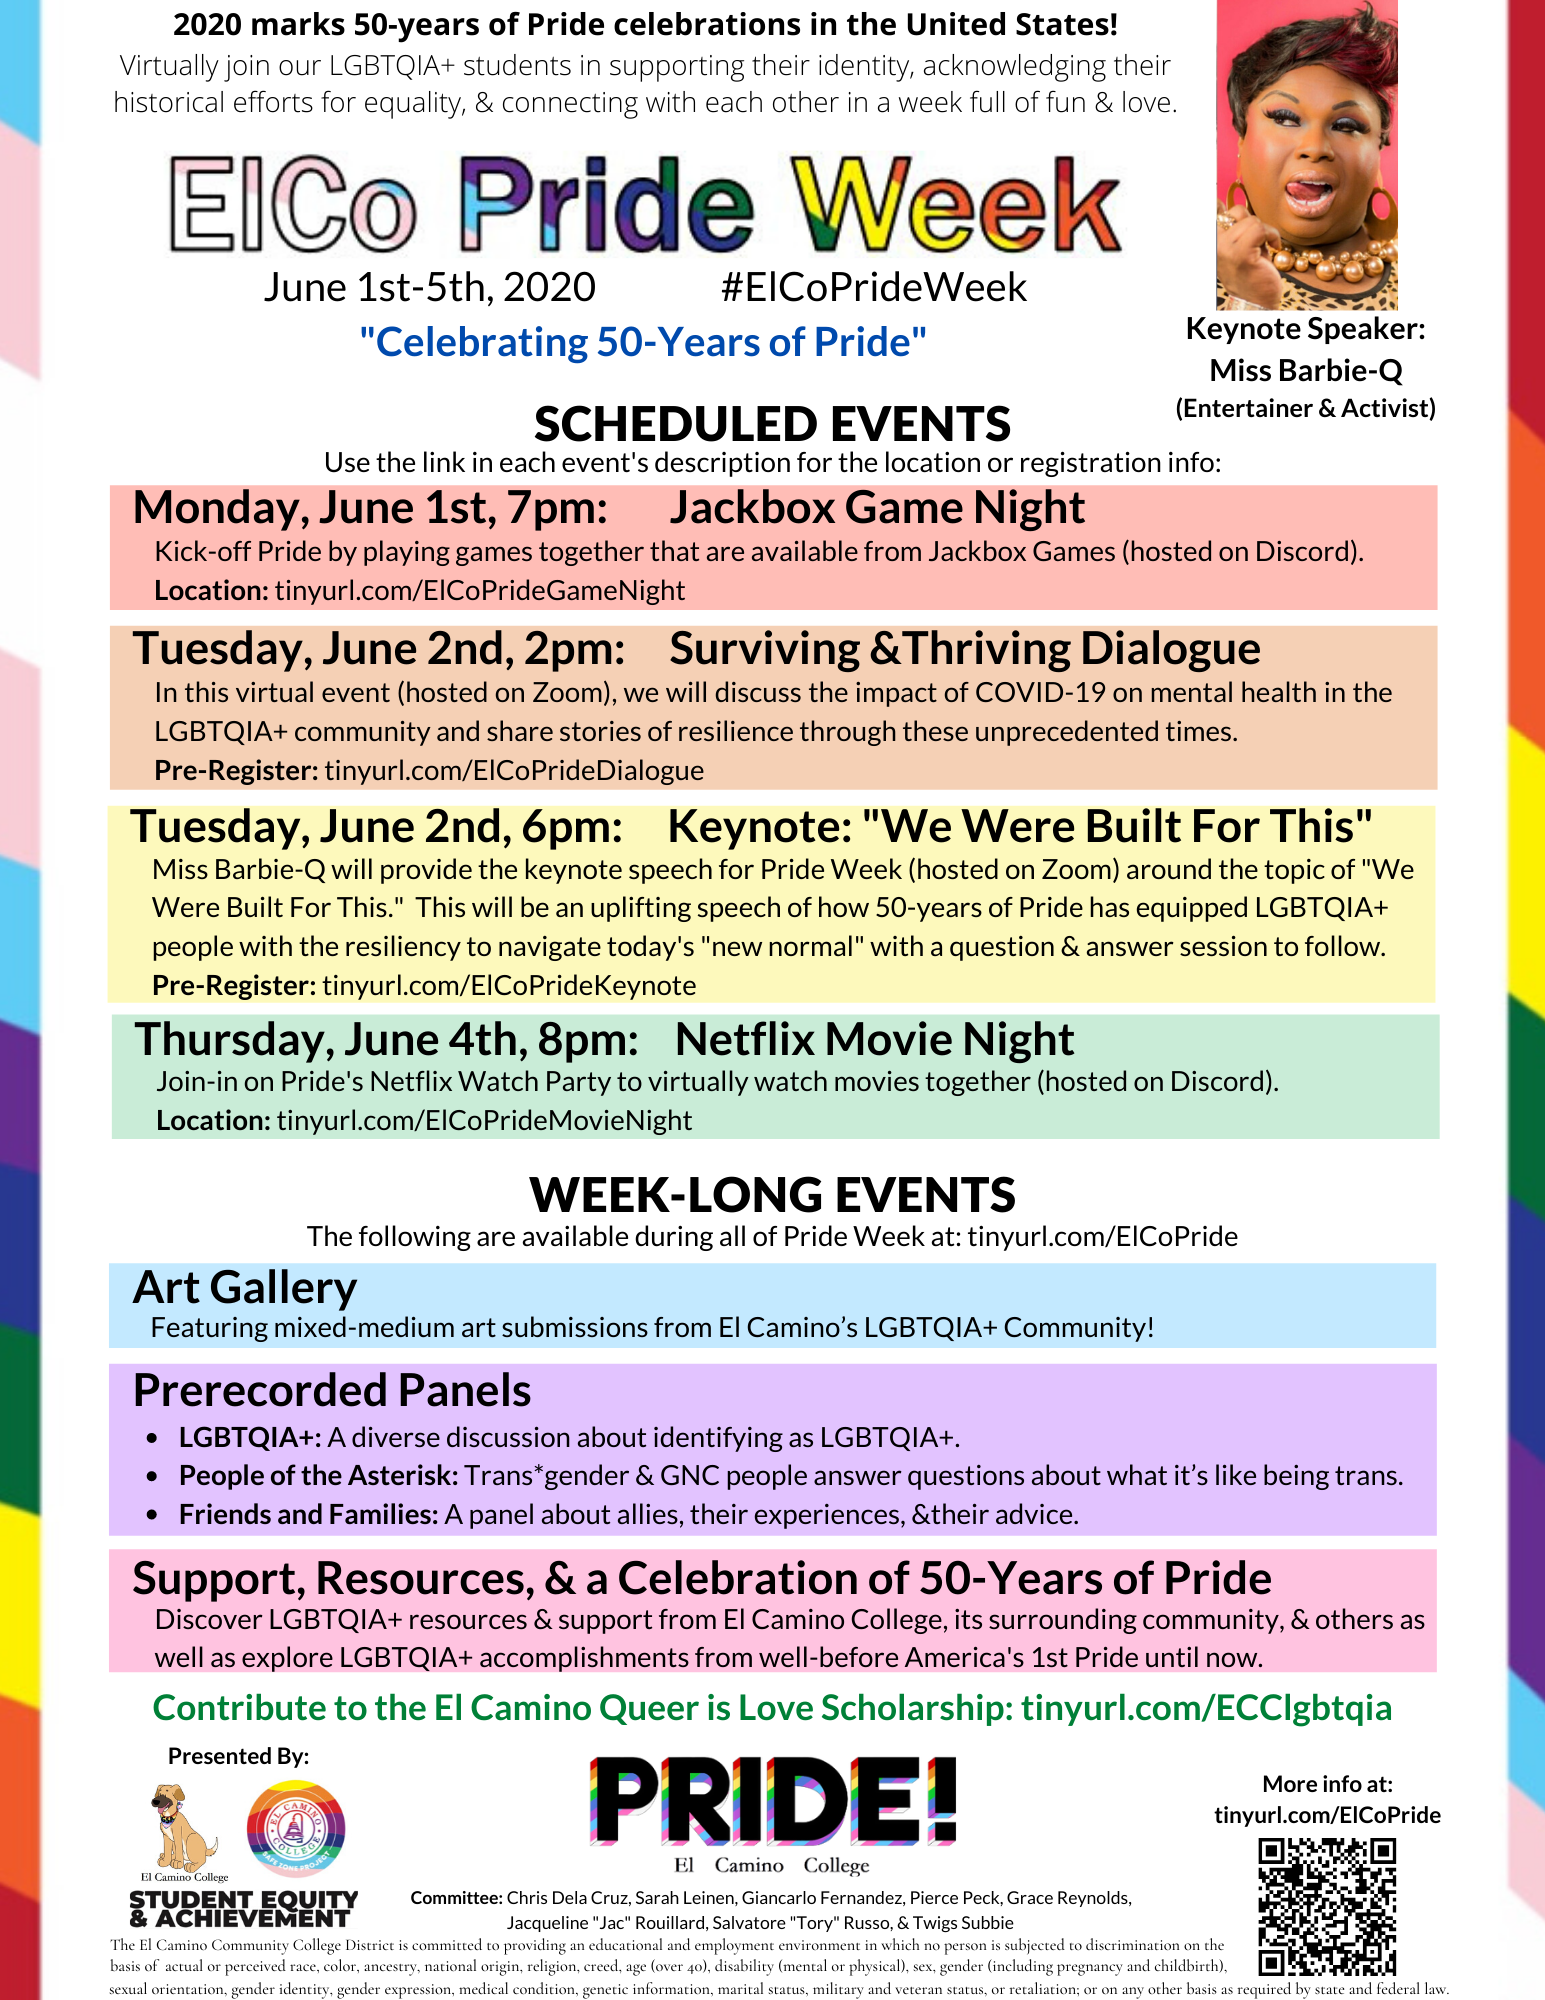 ElCo Pride Week 2020 Calendar of Events